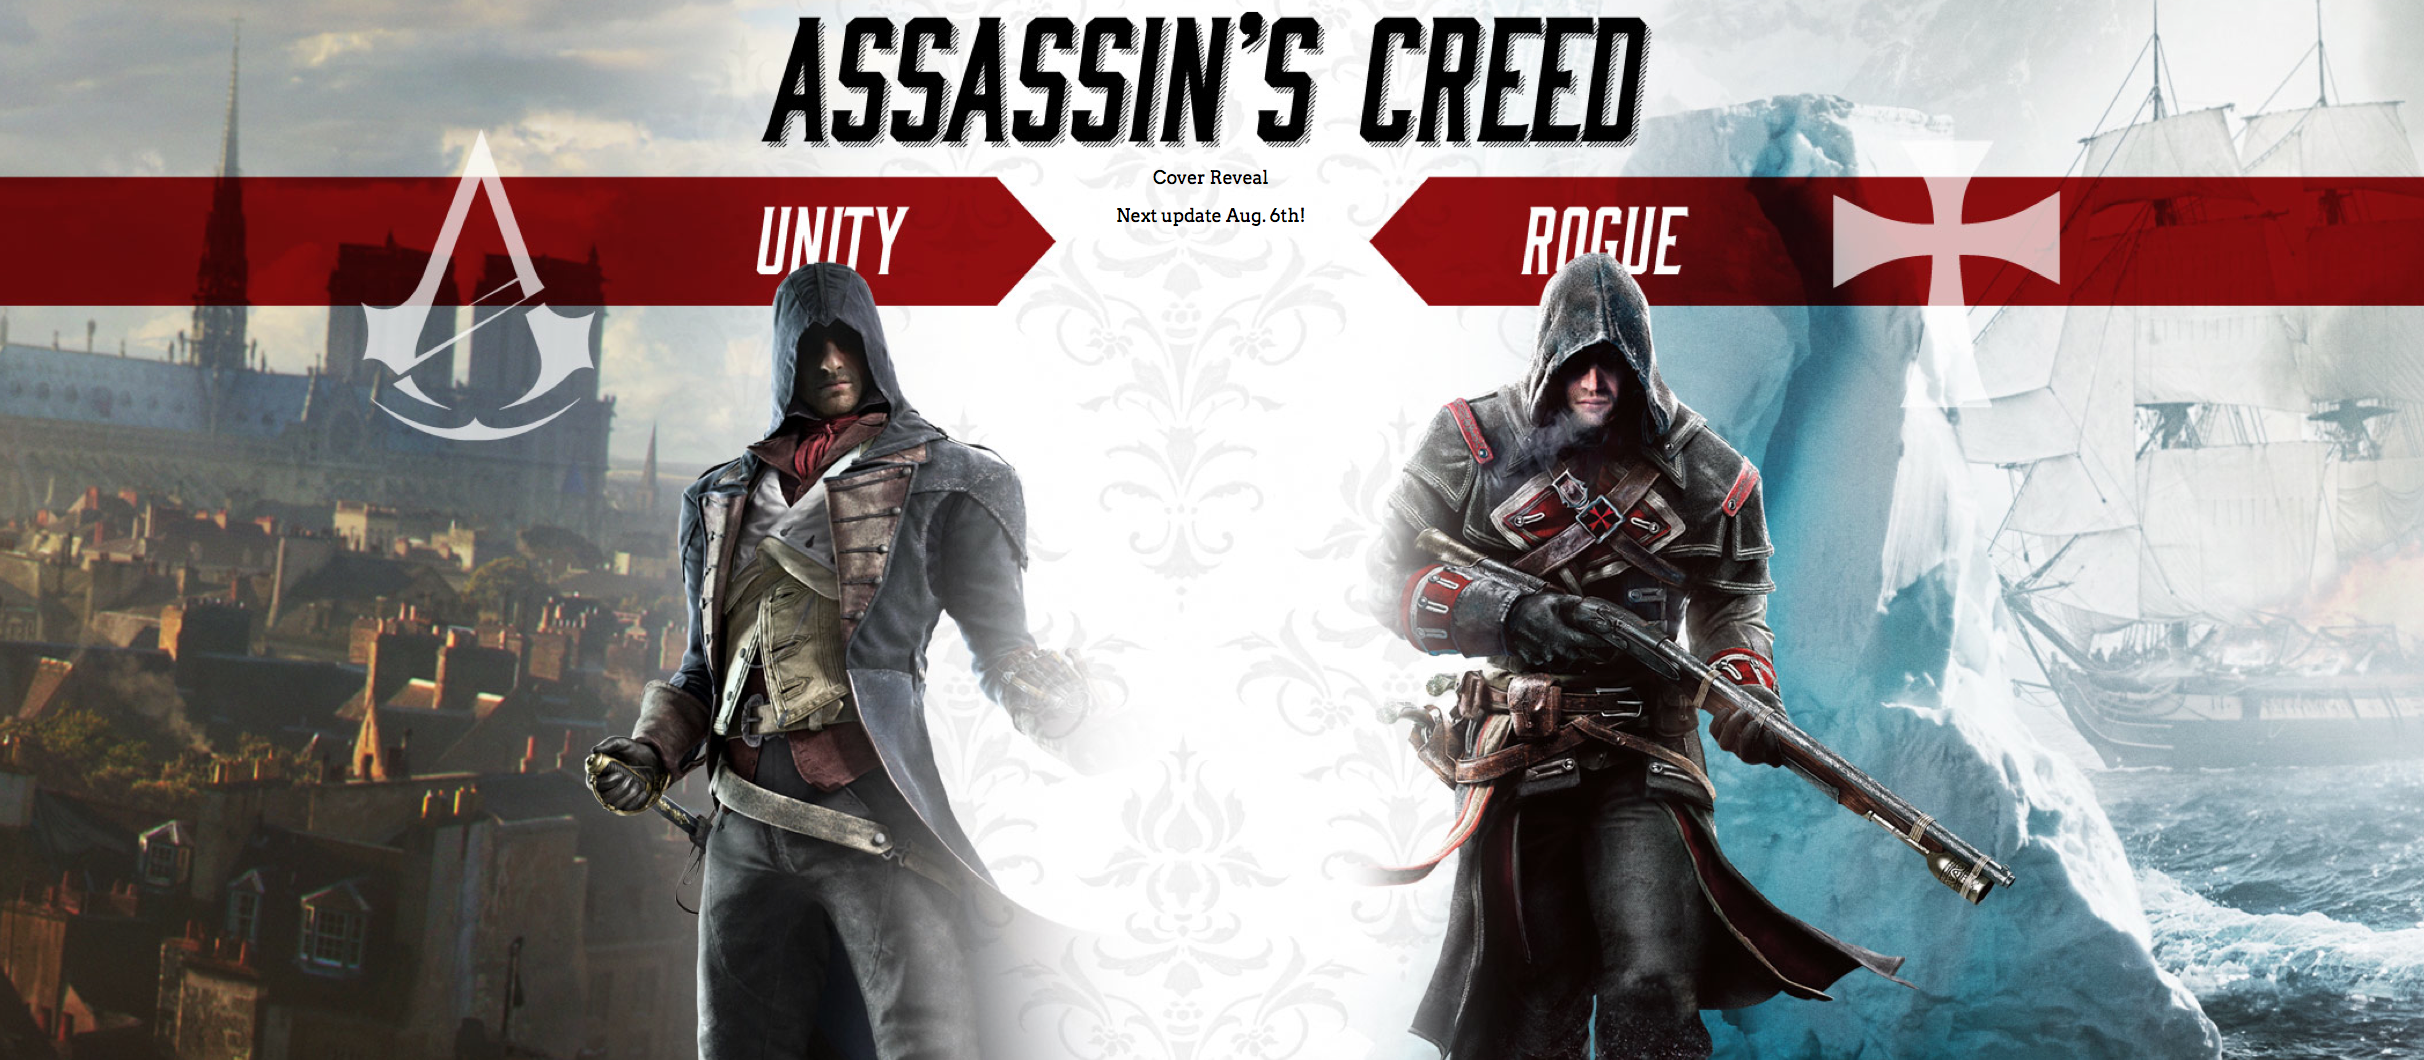 Assassins Creed Unity Rogue